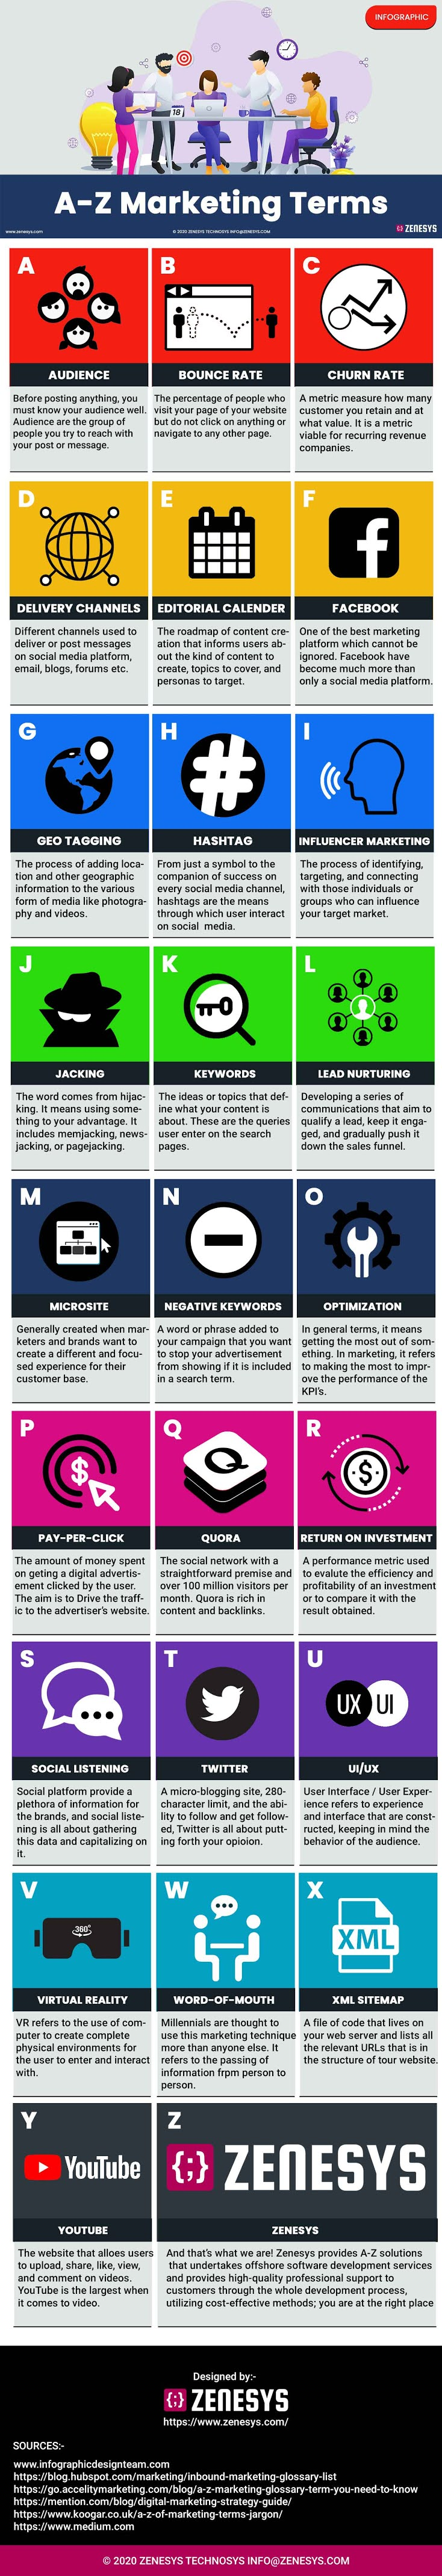 A-Z Marketing Terms #infographic #Digital Marketing #Business #Marketing